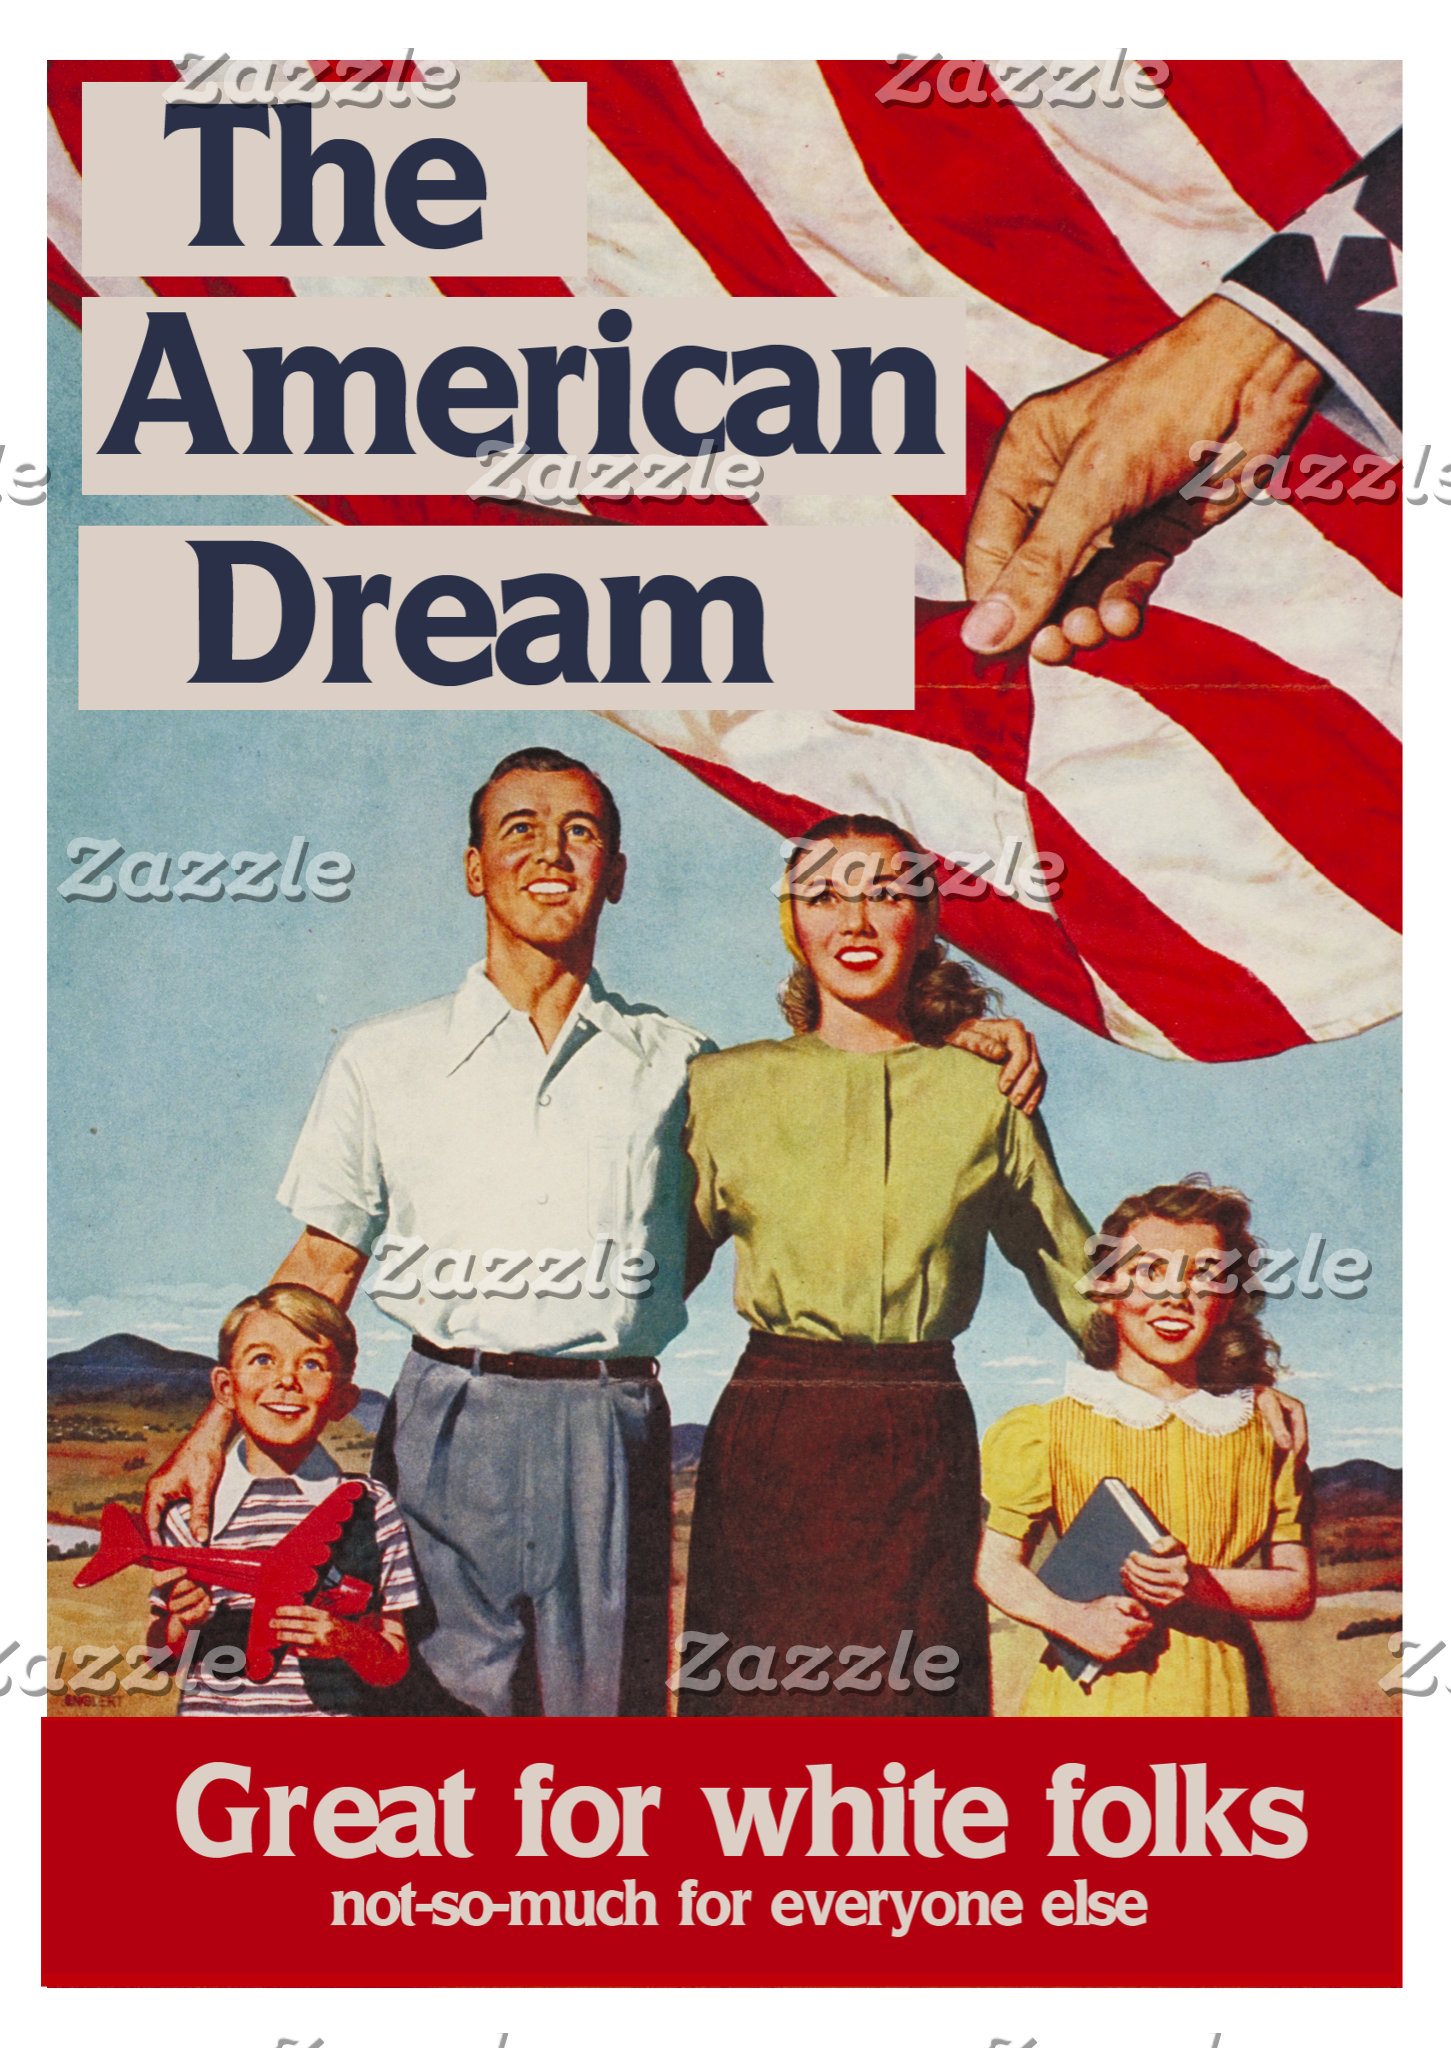 The American Dream is great for white folks